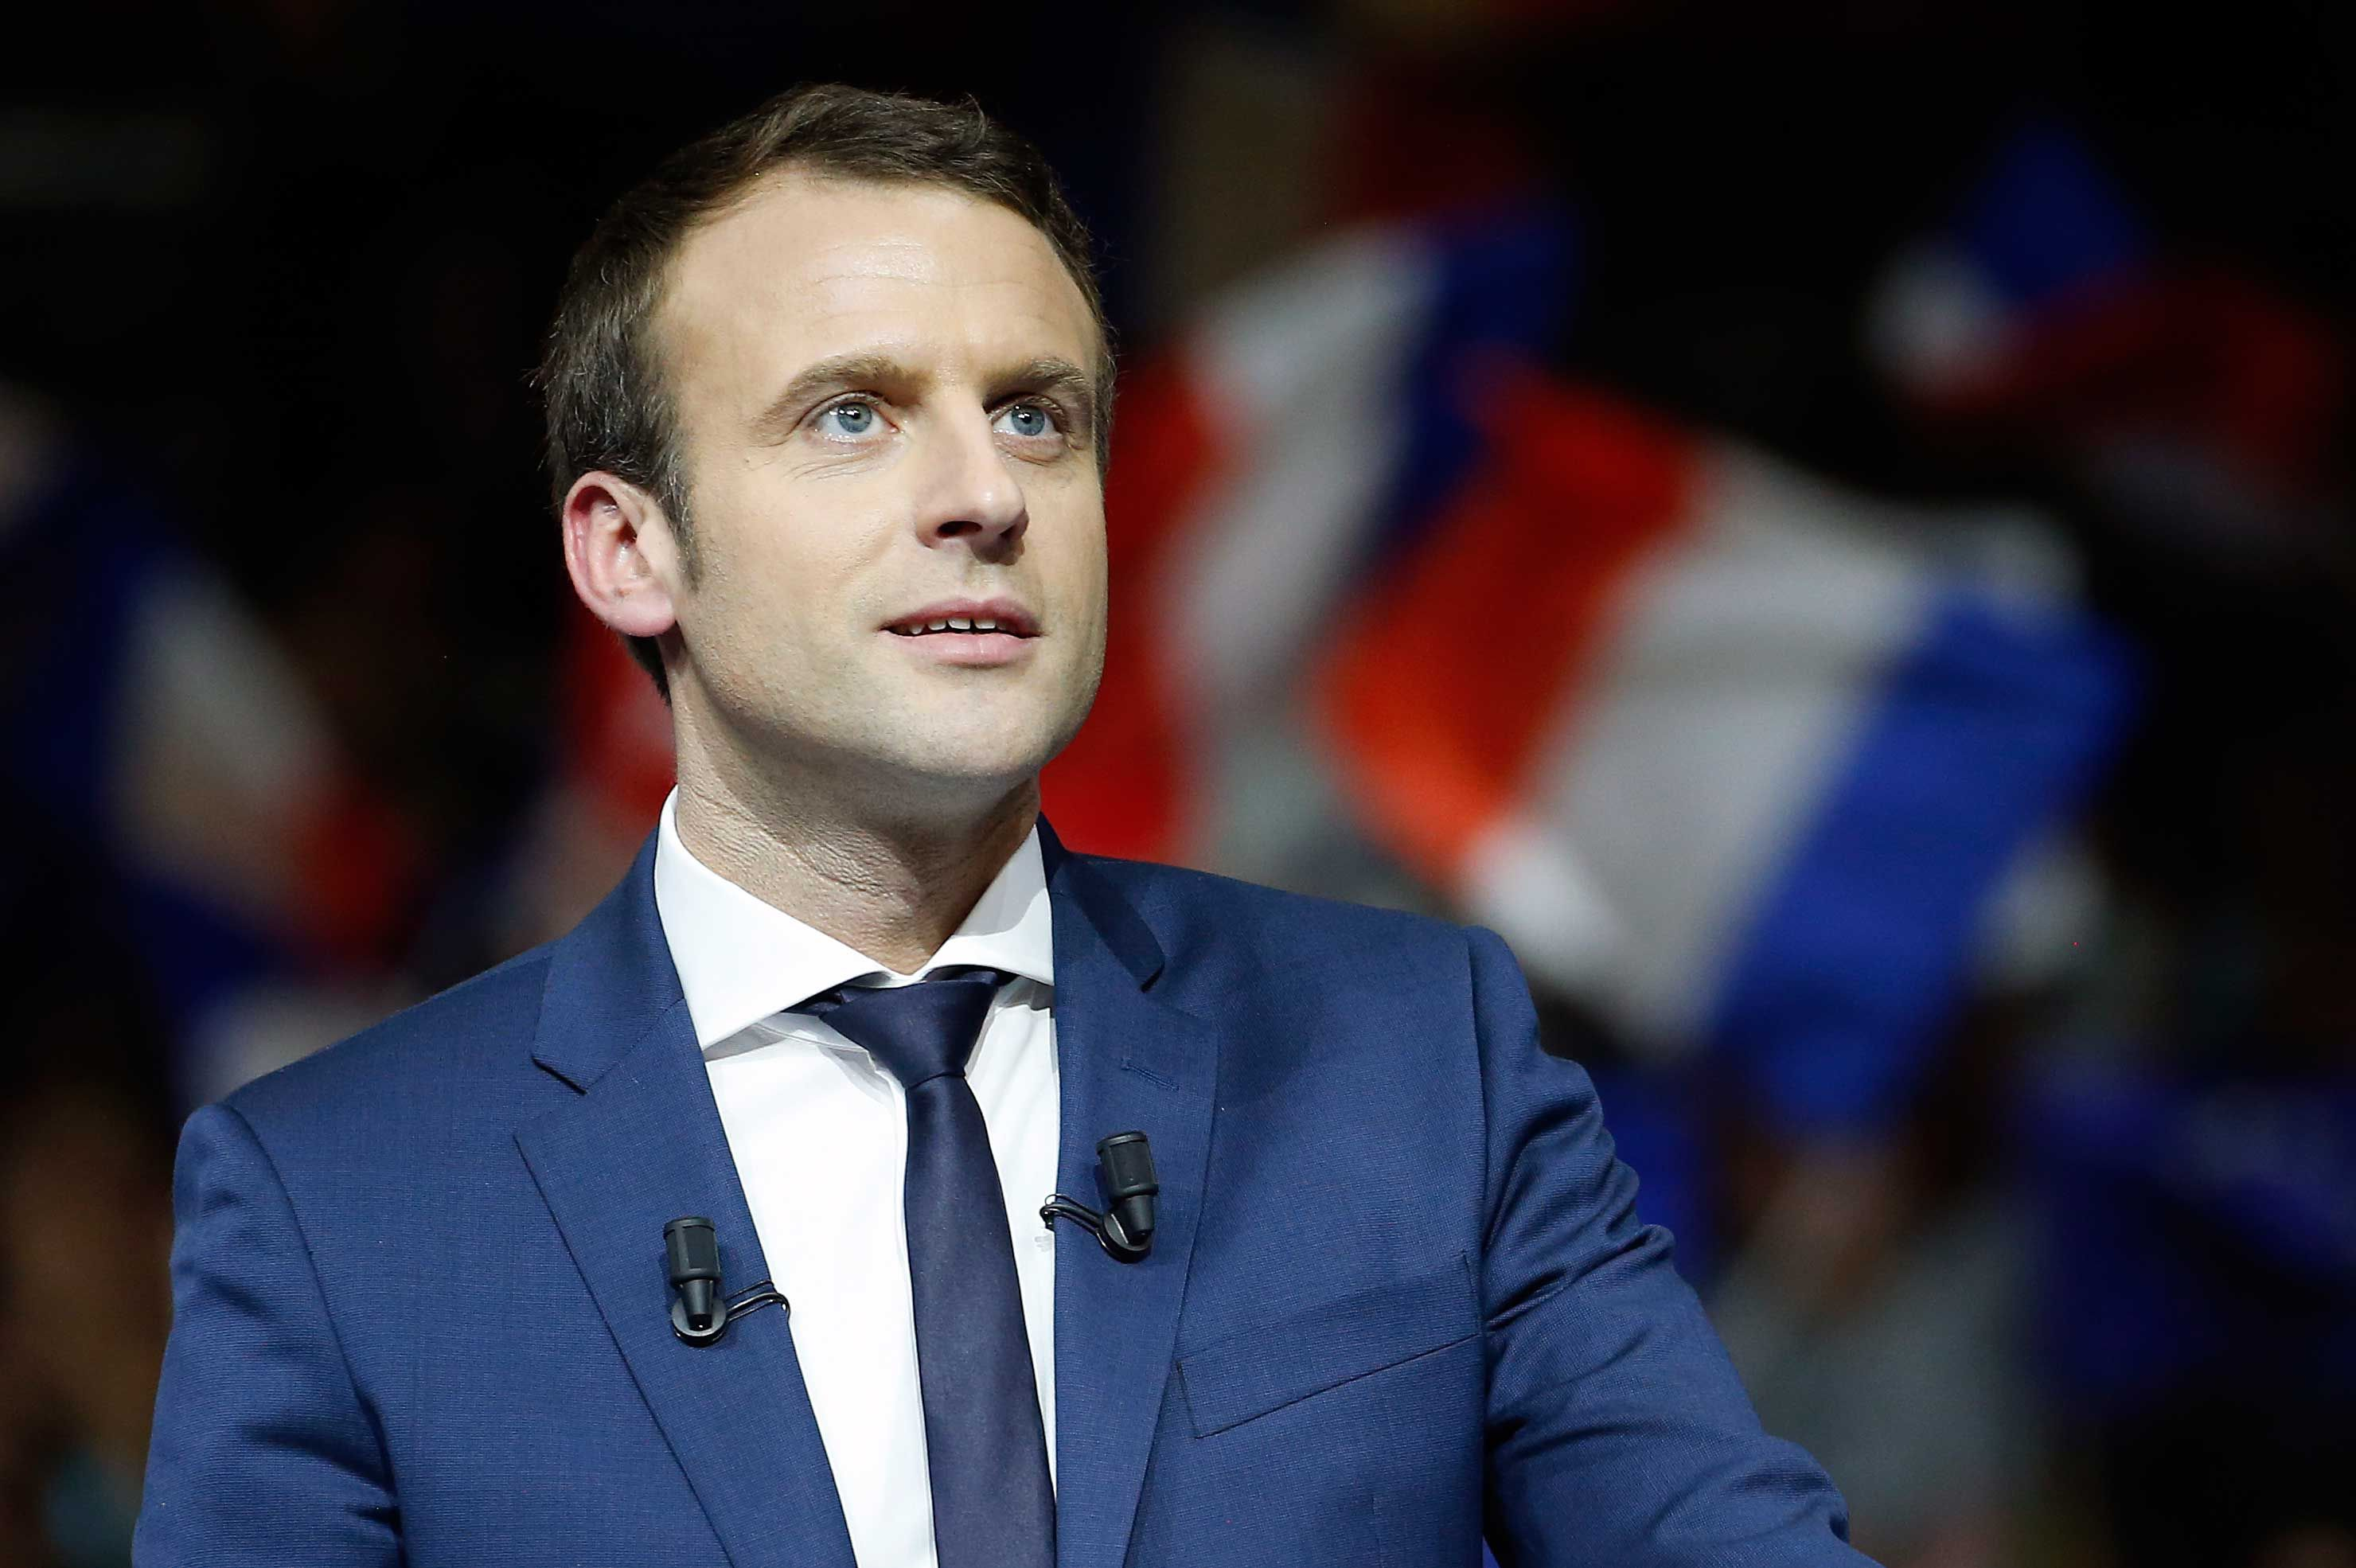 Who Is Emmanuel Macron Presidential Candidate Emmanuel Macron Is The Rising Star Of French Politics